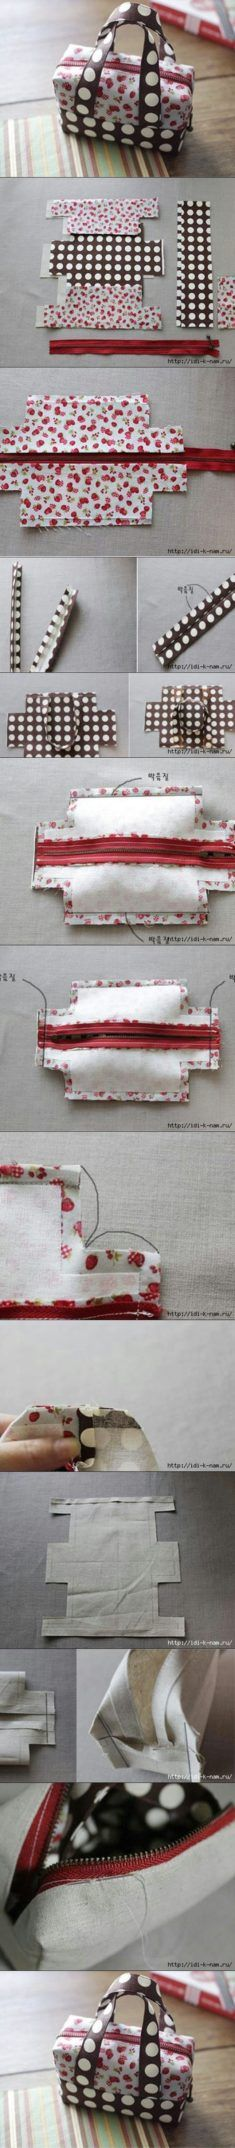 The Perfect DIY Cute Mini Fabric Tote